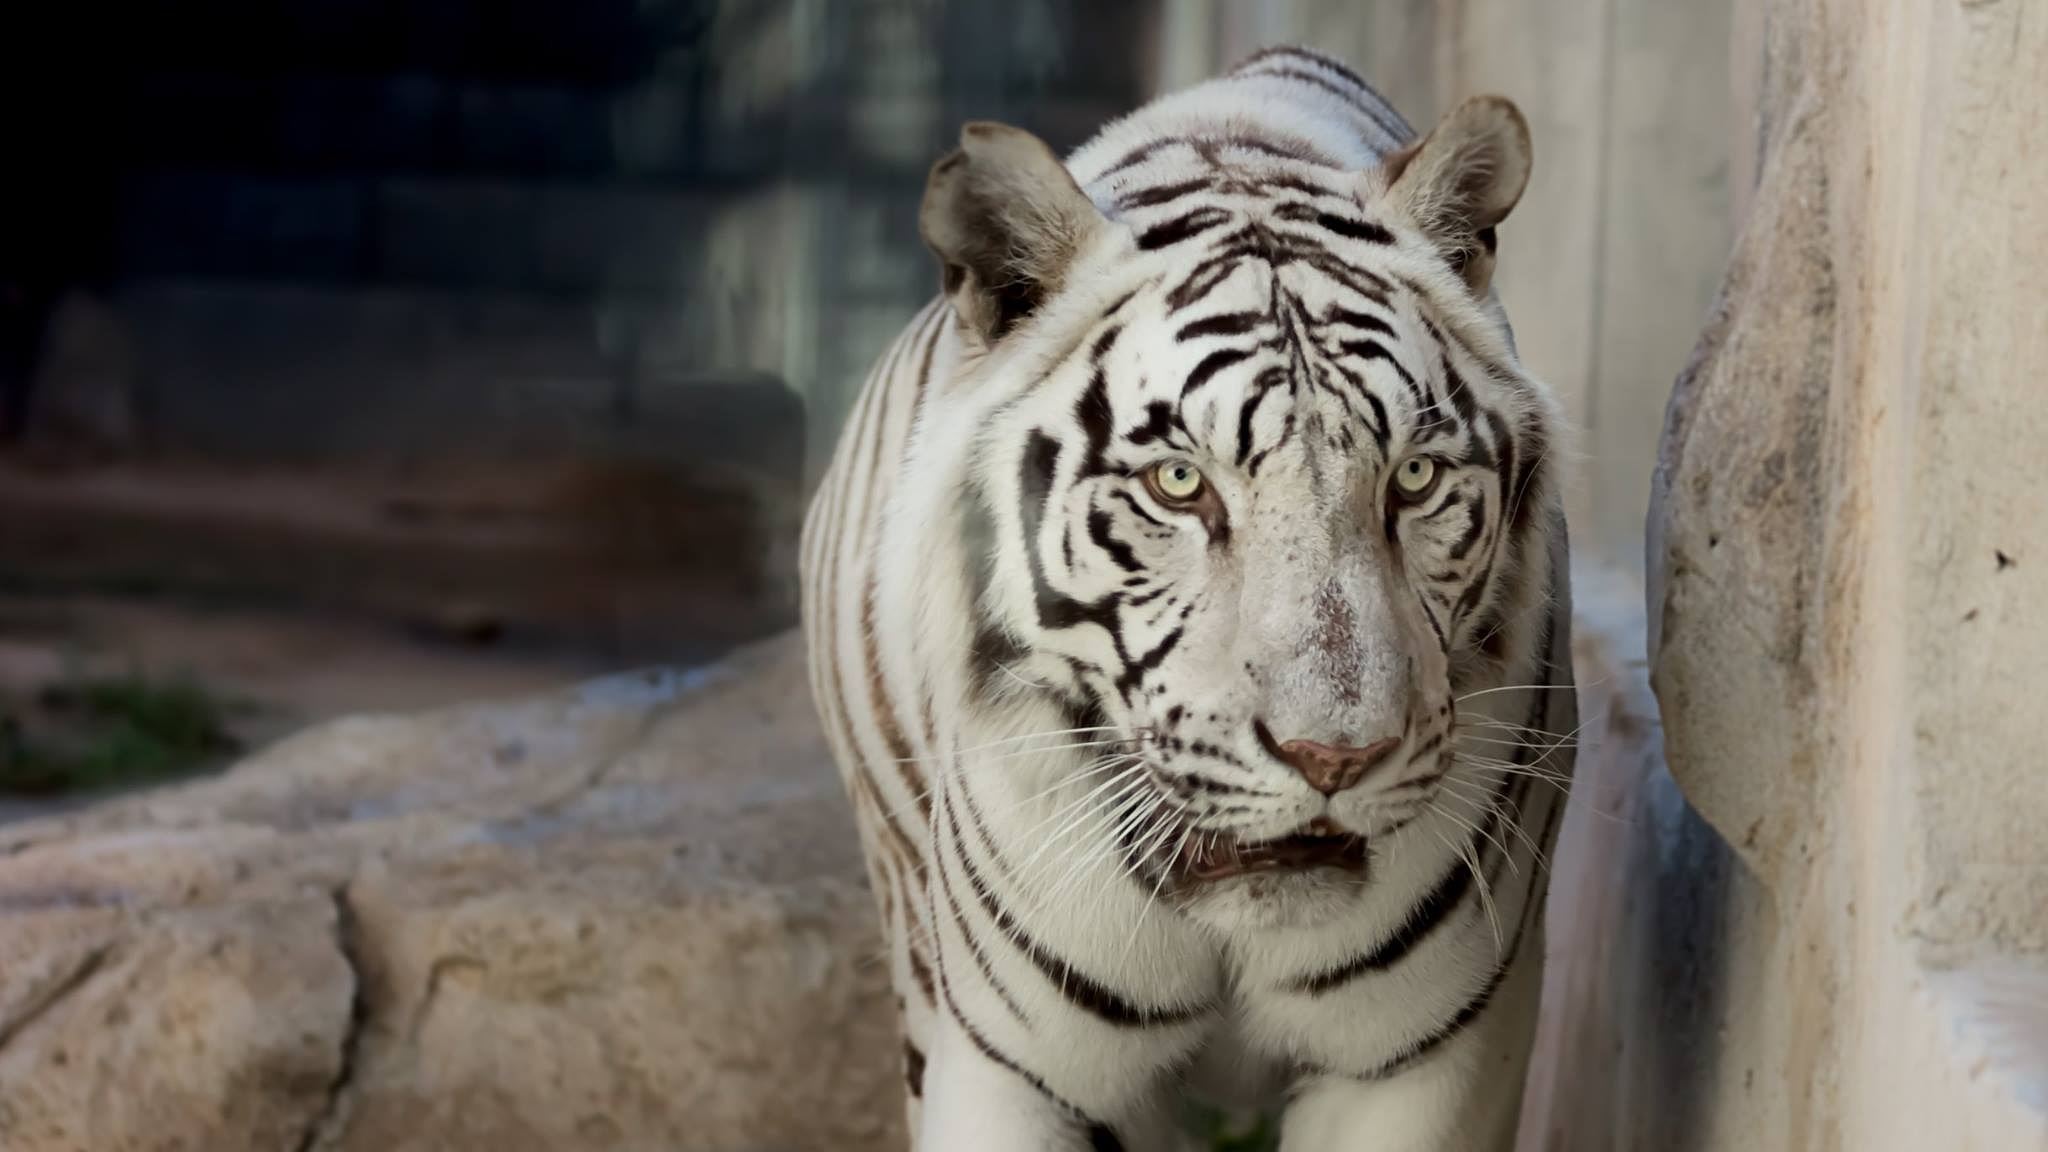 White Tiger Look by Wissam Shehade